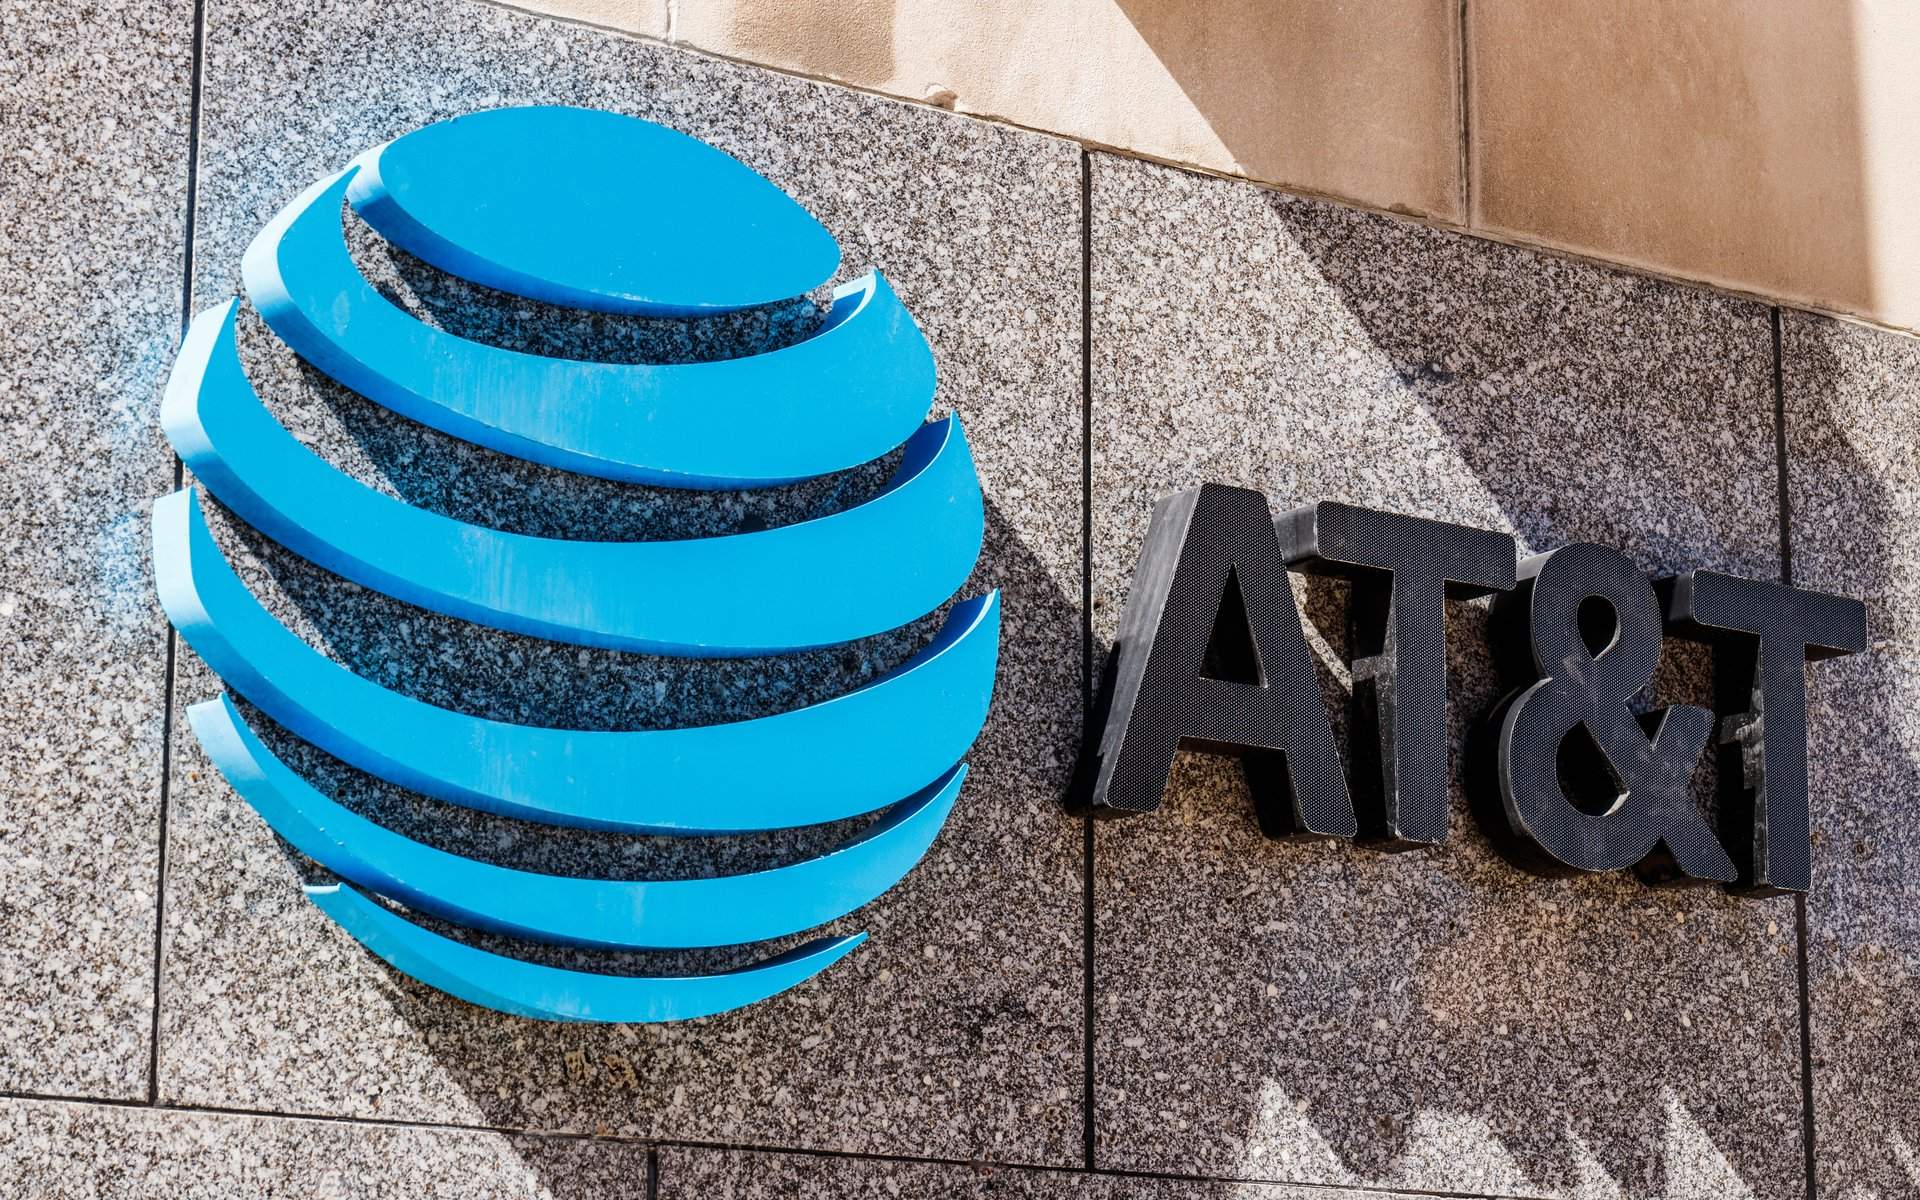 Cryptocurrency Theft Triggers $224M Lawsuit Against AT&T